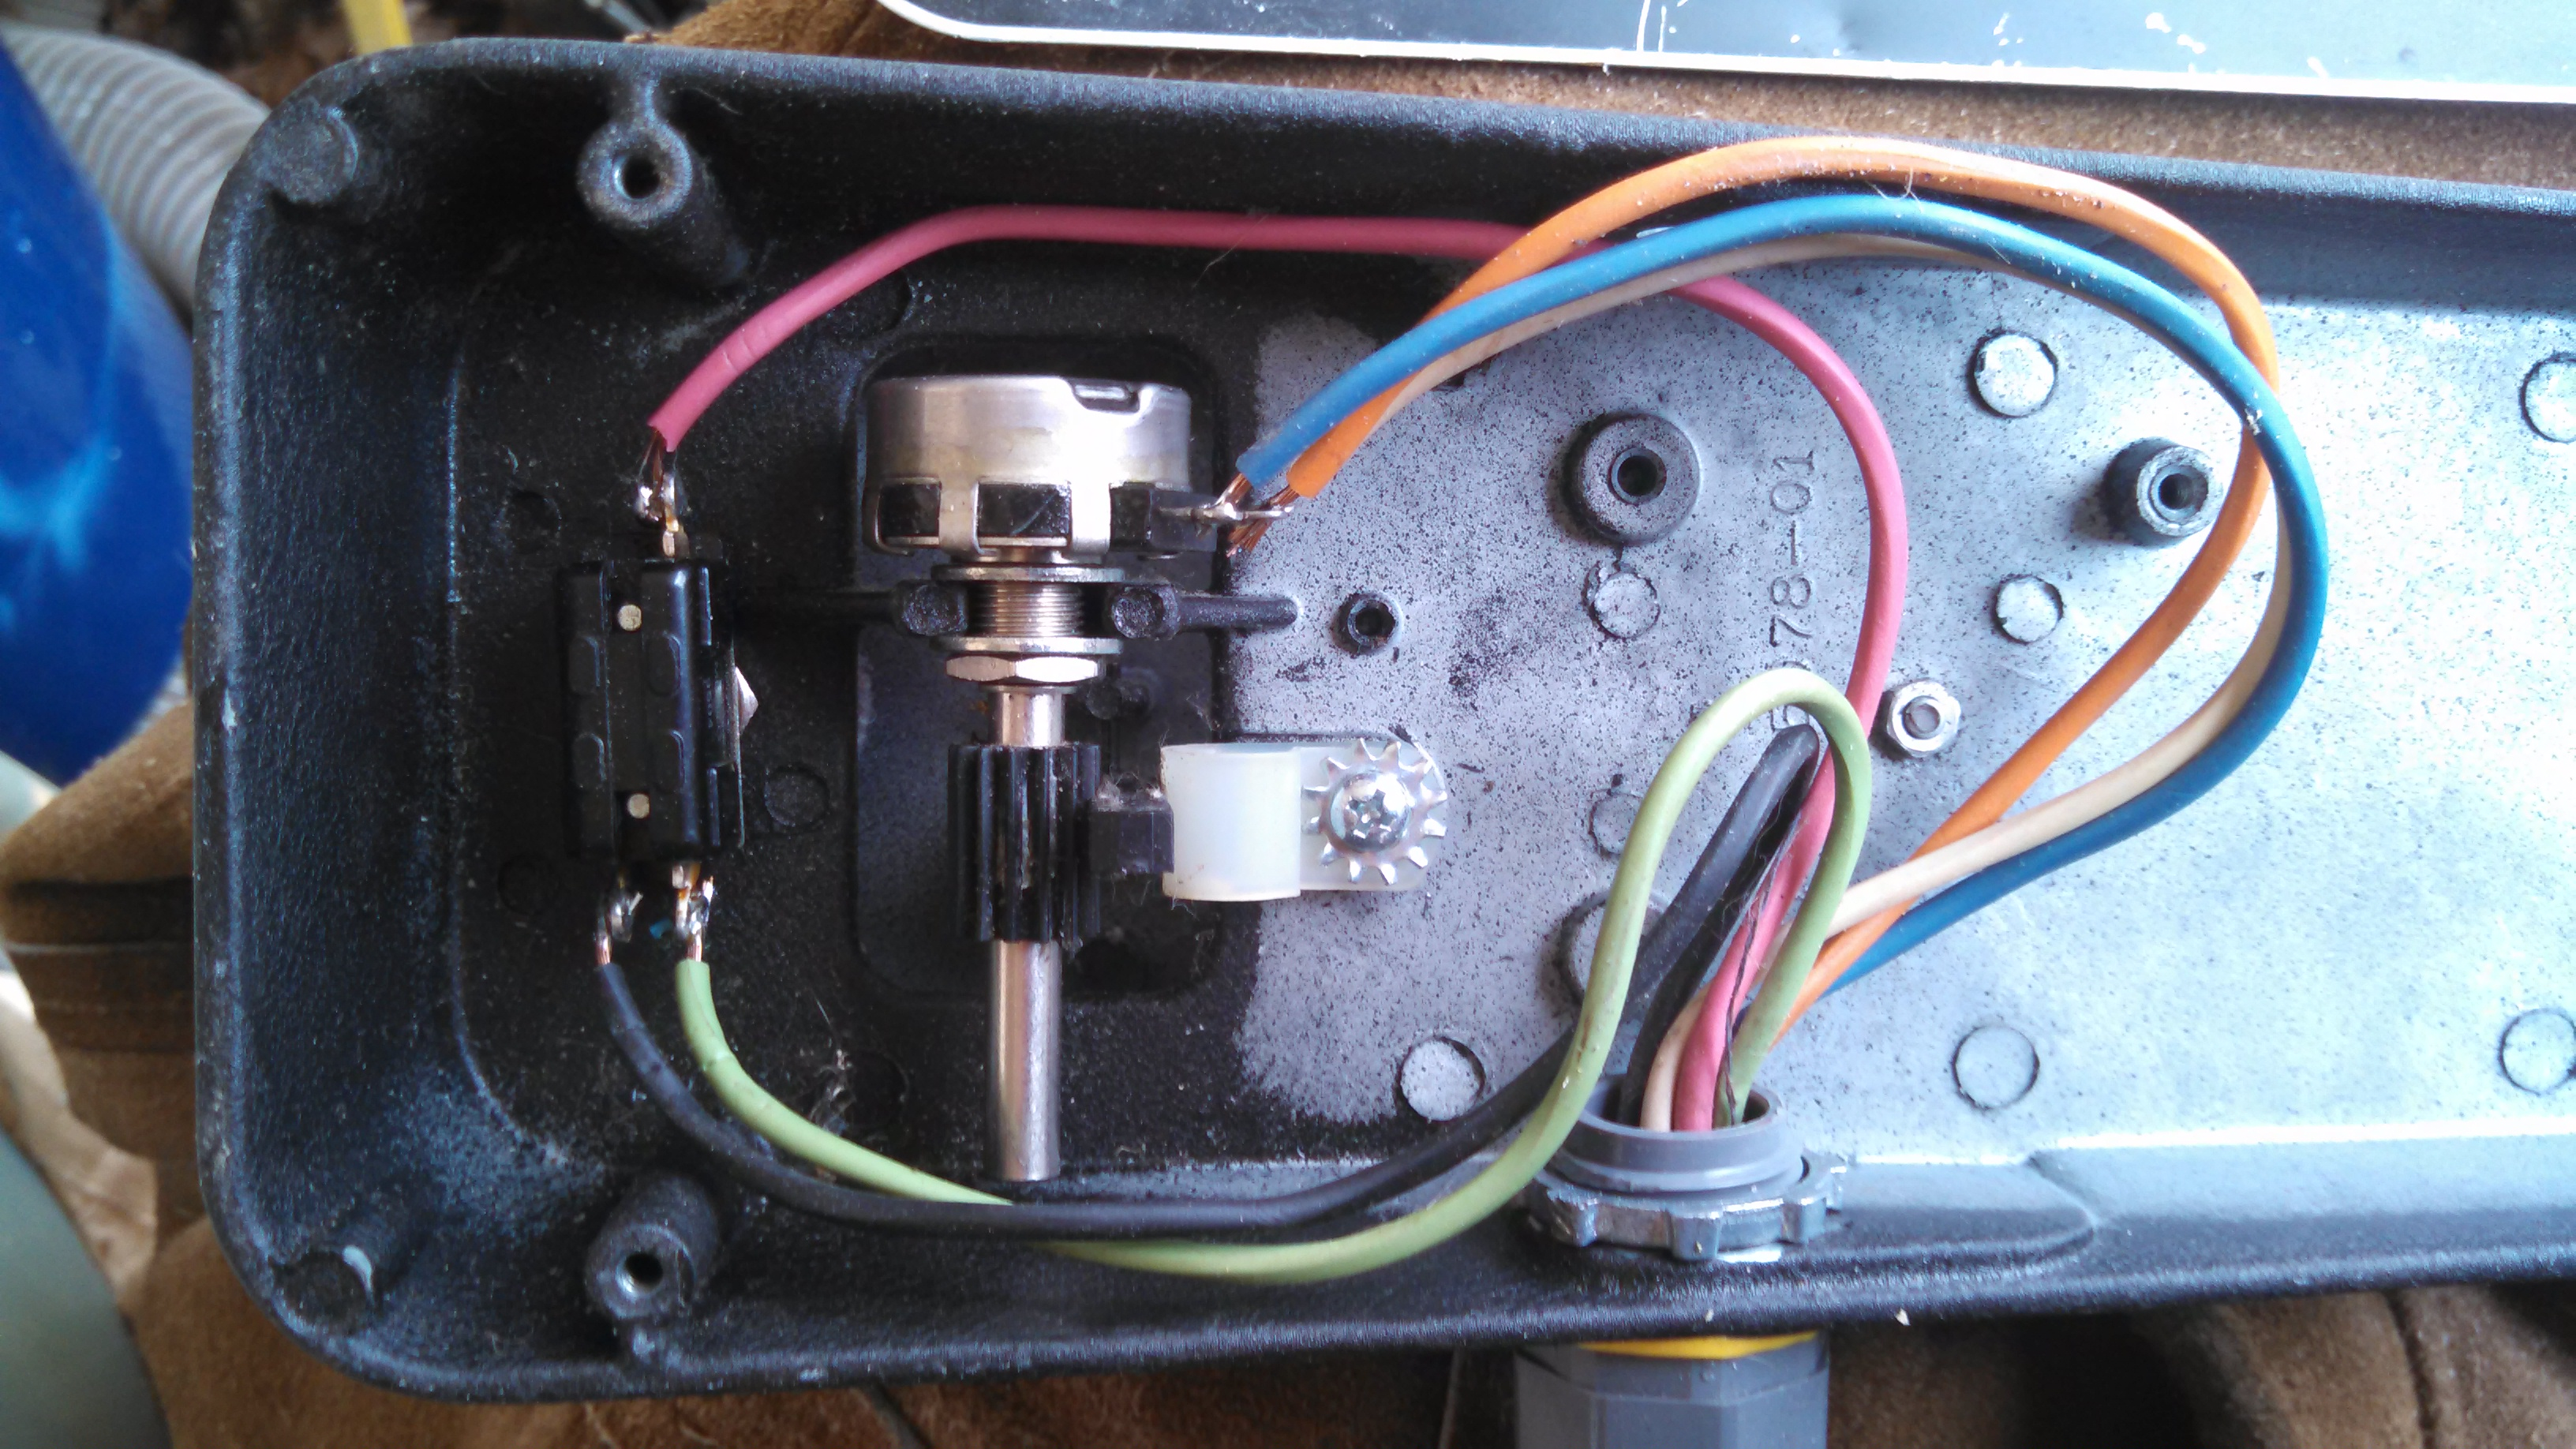 Poor Mans Variable Speed Pedal Other Projects Clarostat Potentiometer Wiring Little Difficult And It Is Kind Of Expensive After Buying Online I Found Out That They Do Carry At Lowes Sell By The Foot Off